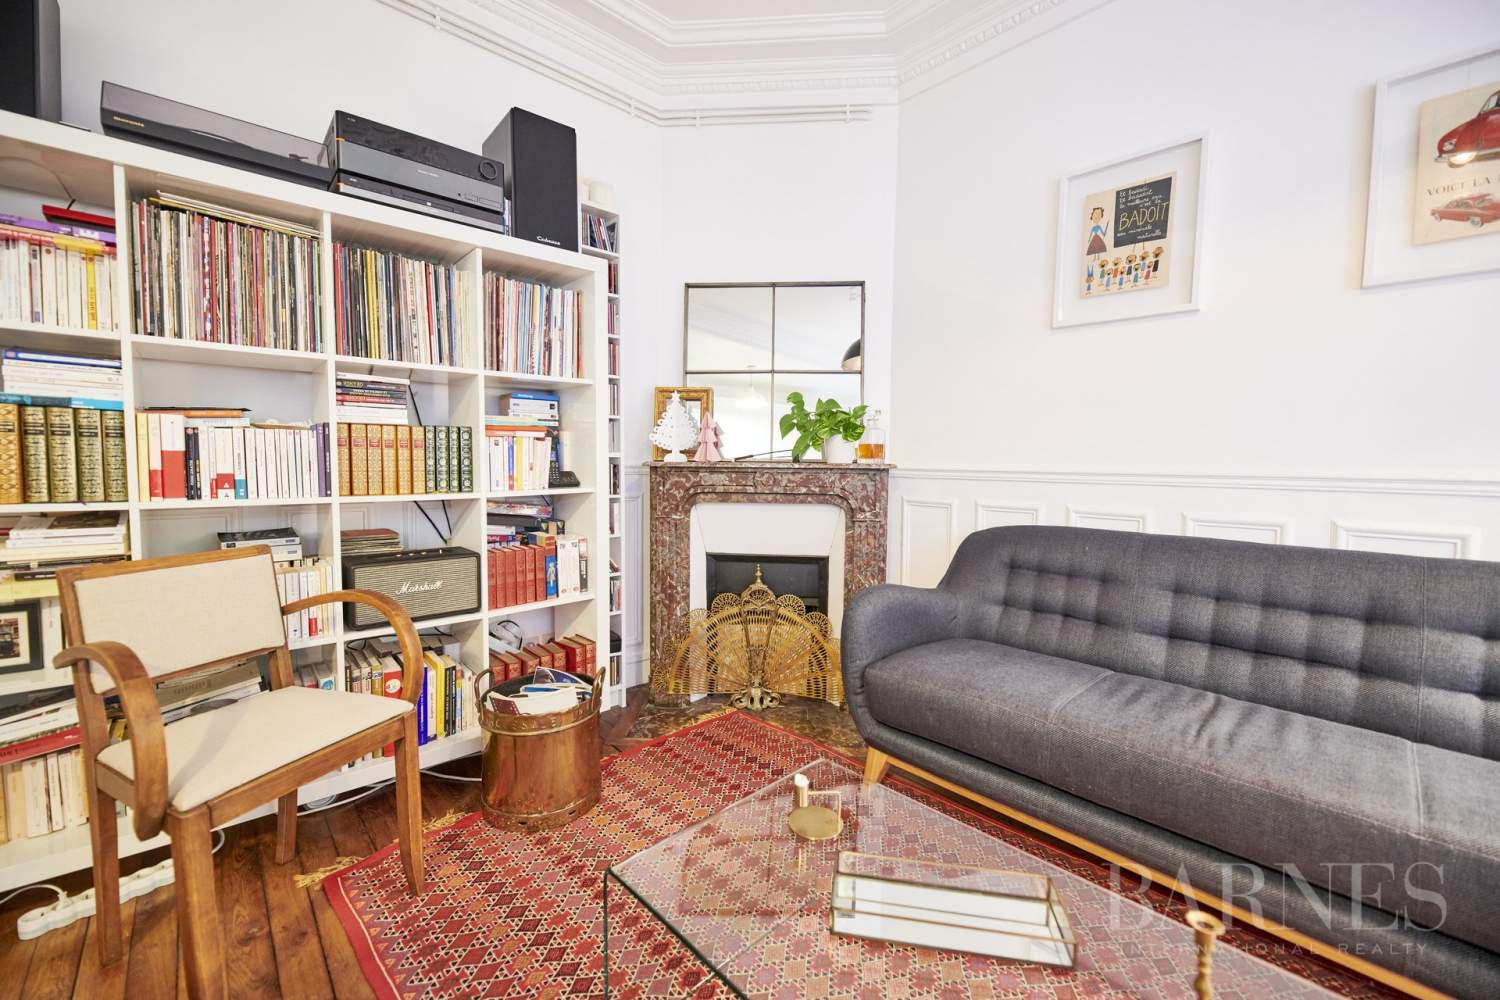 Barnes Boulogne Exclusive - Old apartment with charm - 2 bedrooms picture 1